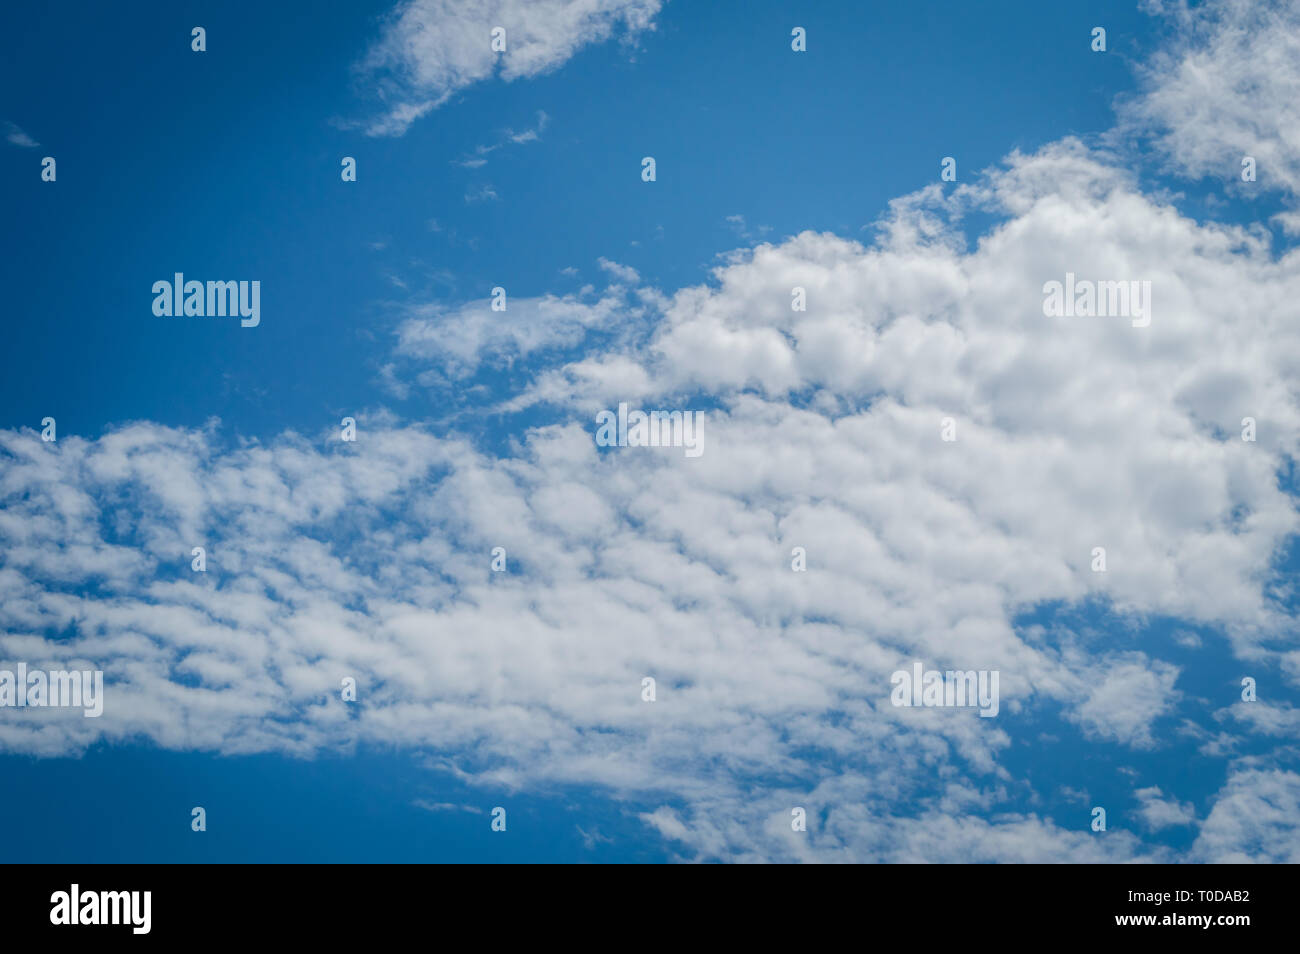 A deep blue sky with continuous white clouds - Stock Image